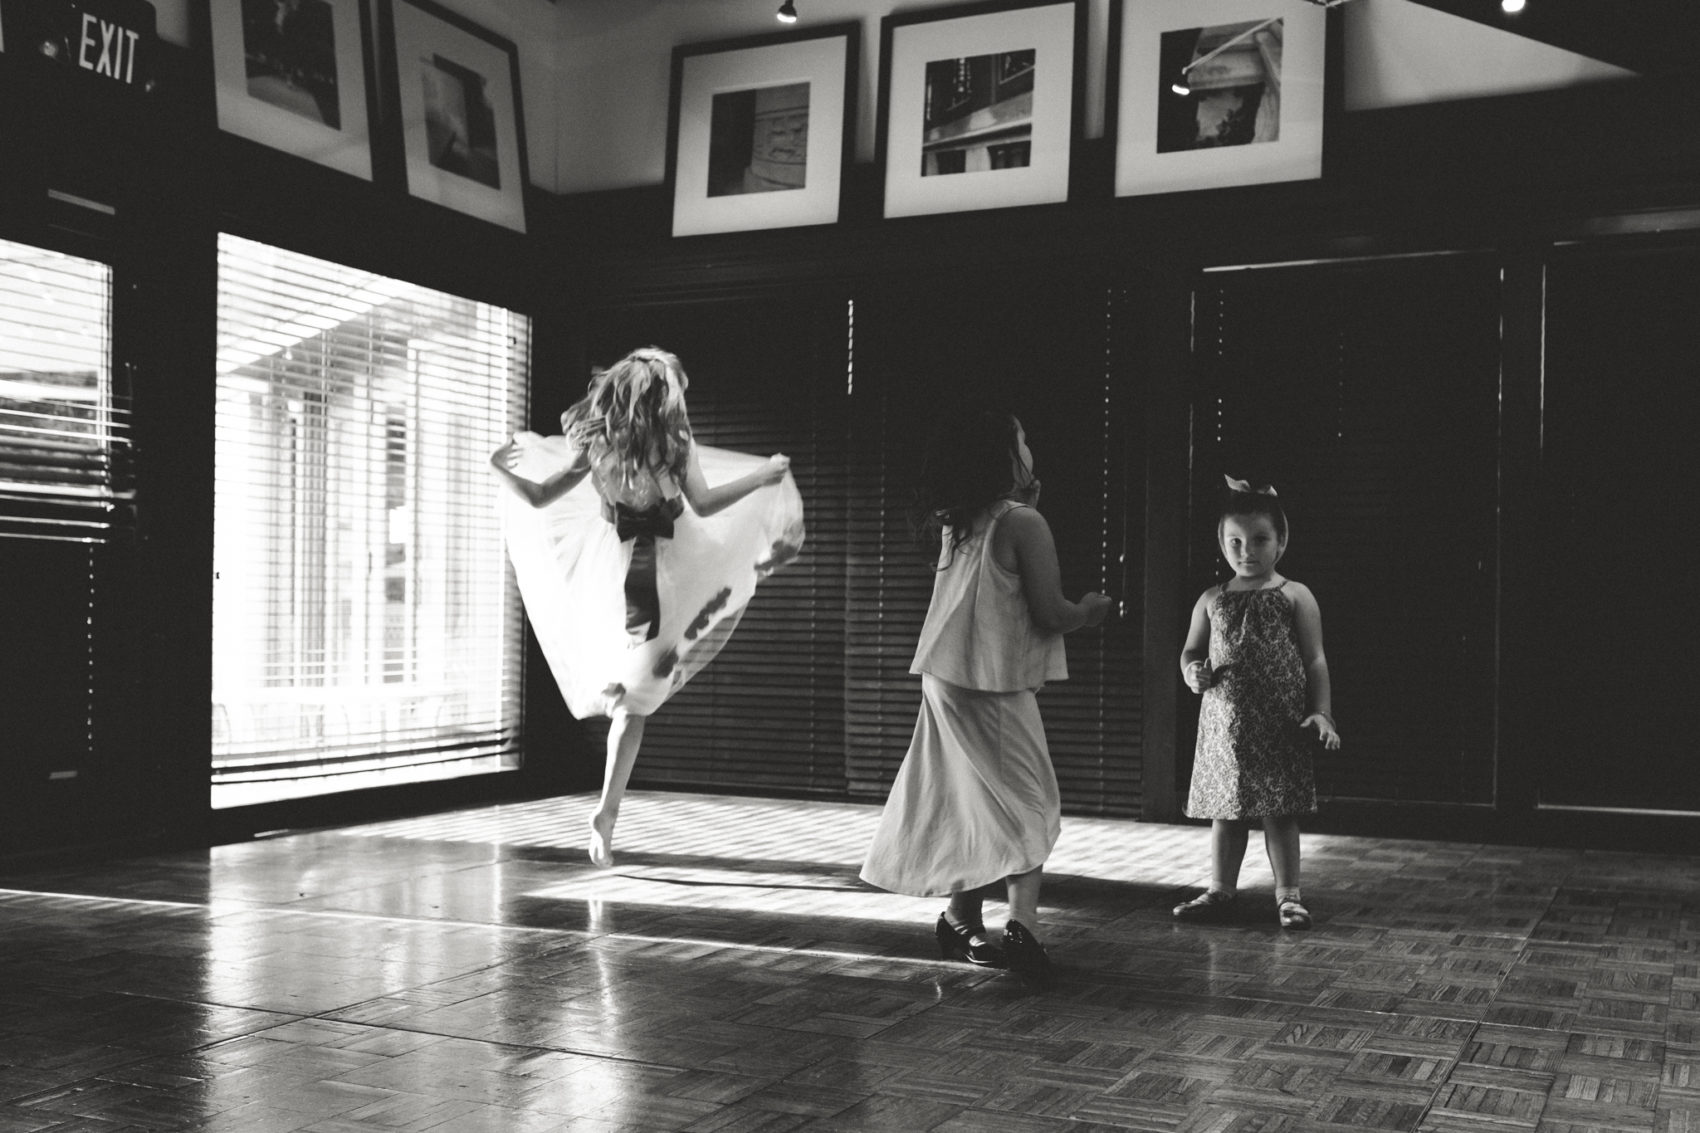 A young girl dances at a wedding reception at Weber's Inn in Ann Arbor, Michigan